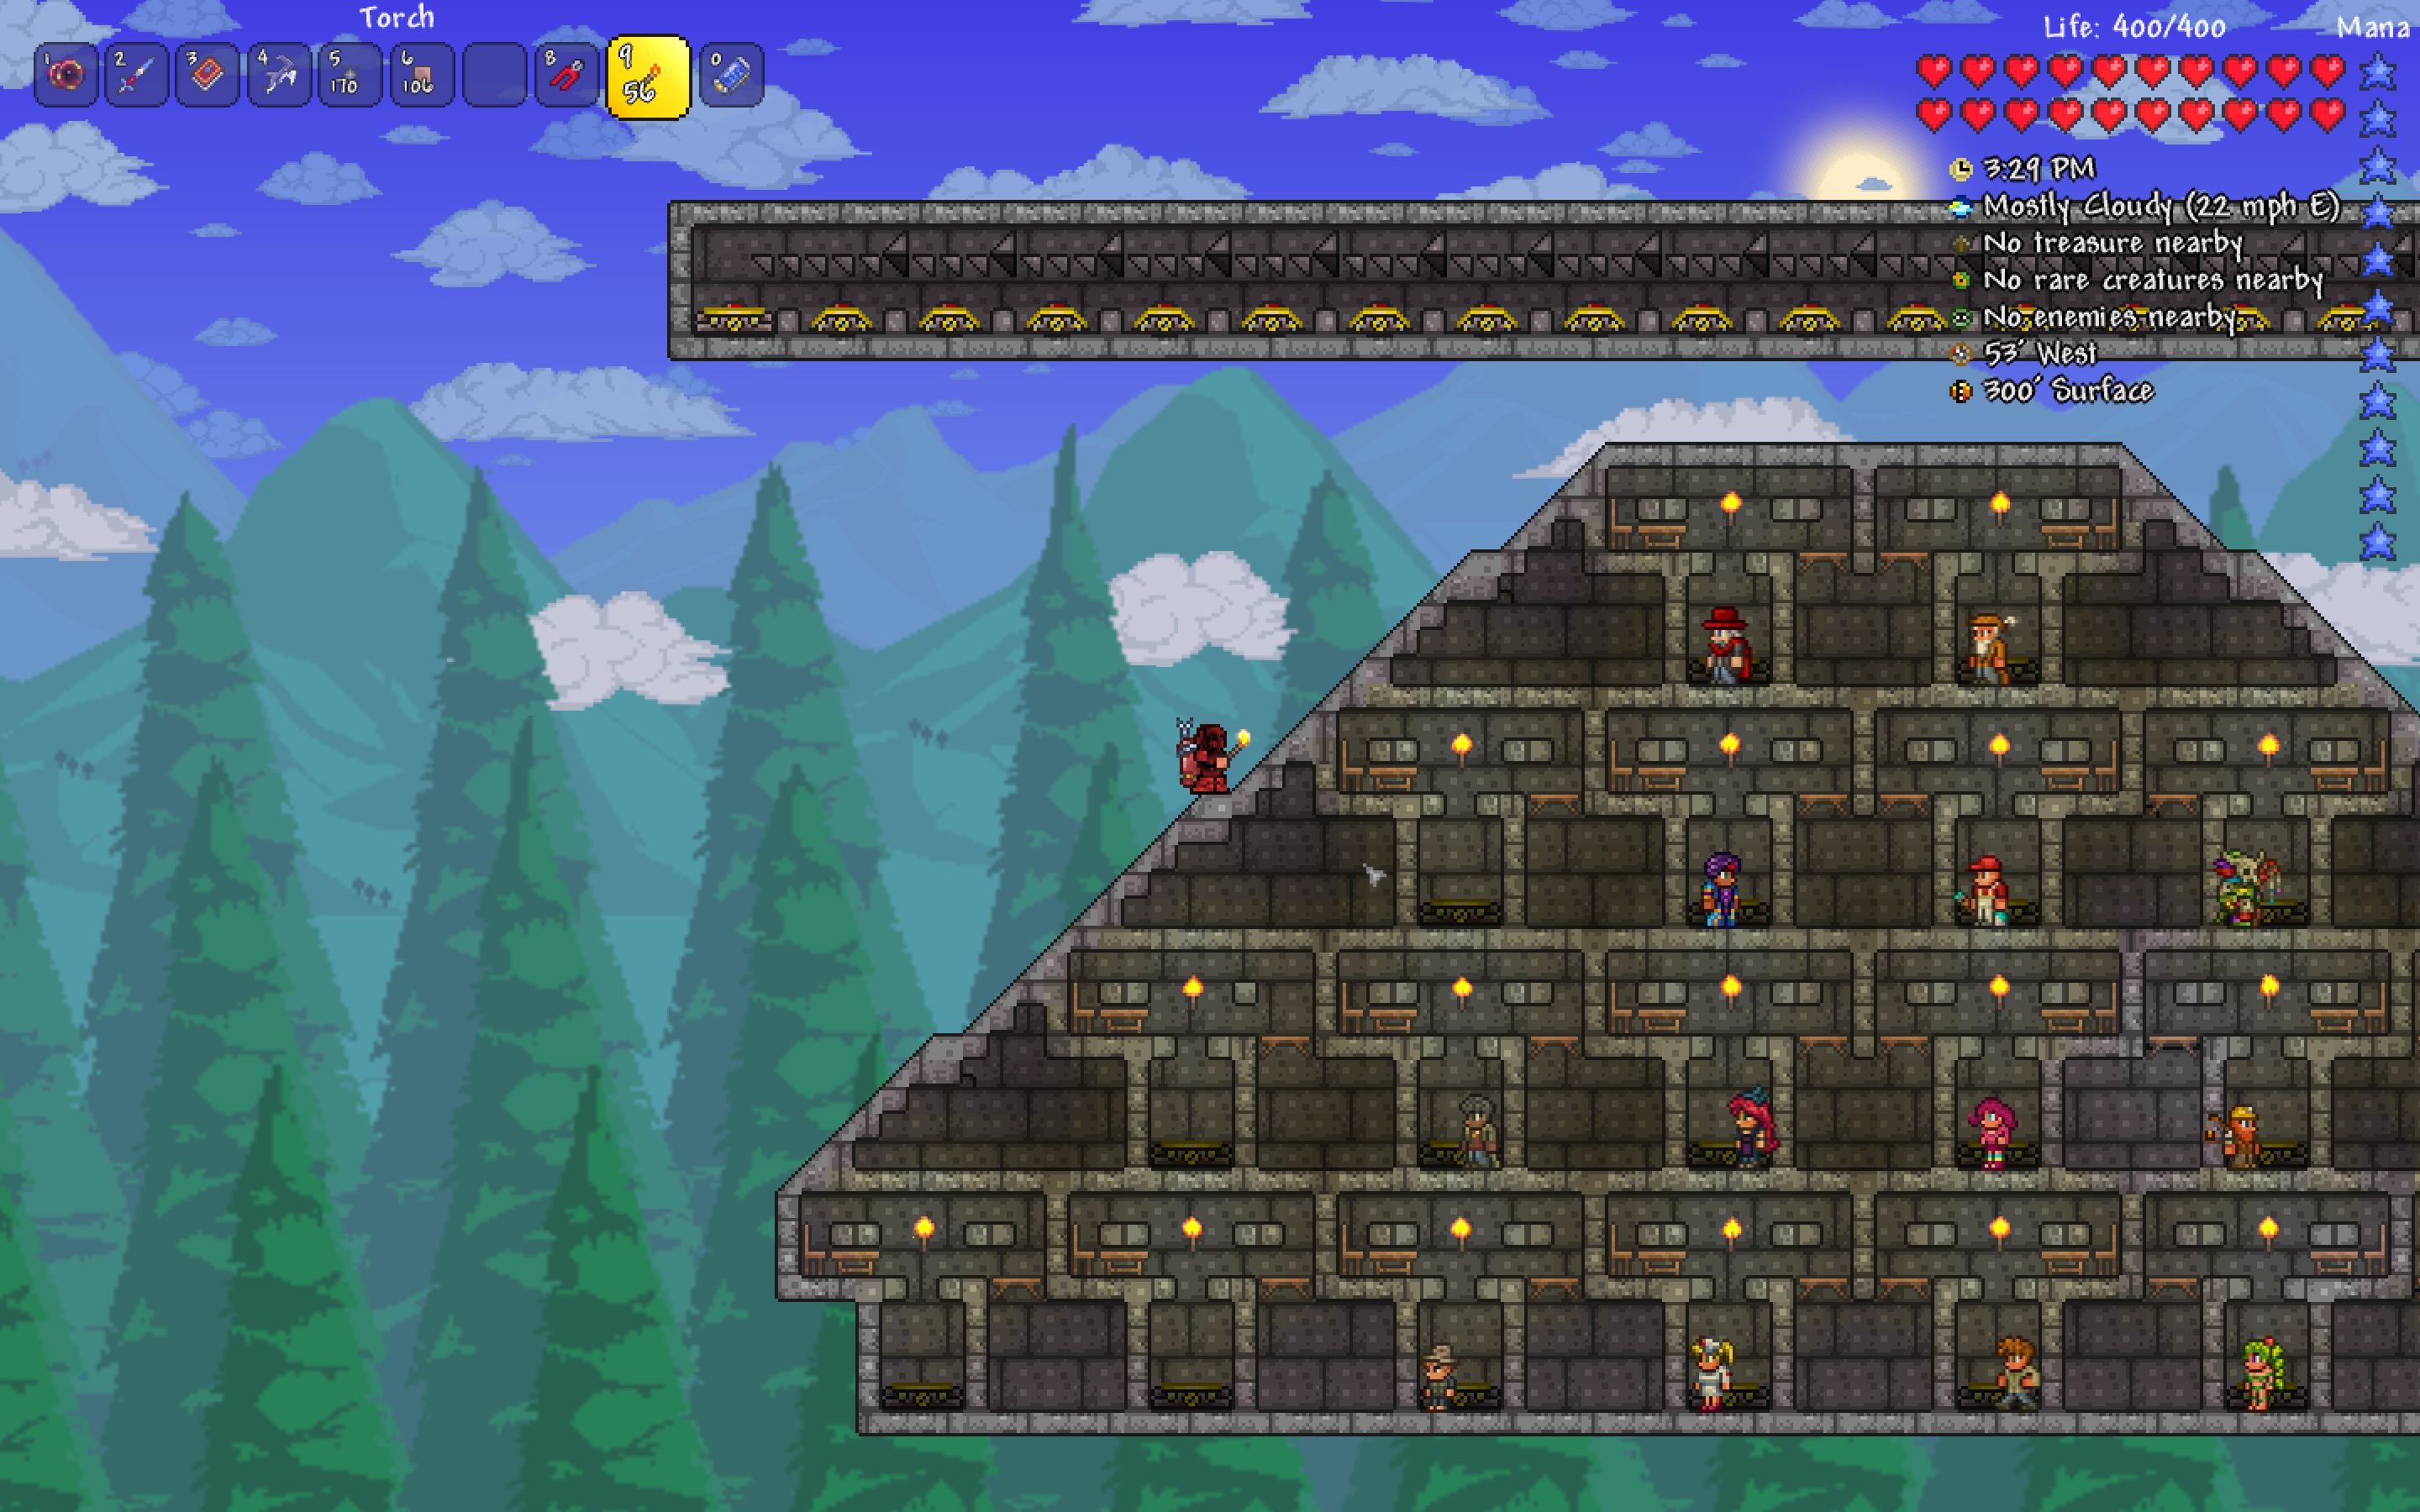 Guide Project Npc Dispenser Terraria Community Forums Your bestiary will give you details of who likes what and why, which makes placing npcs a little easier. guide project npc dispenser